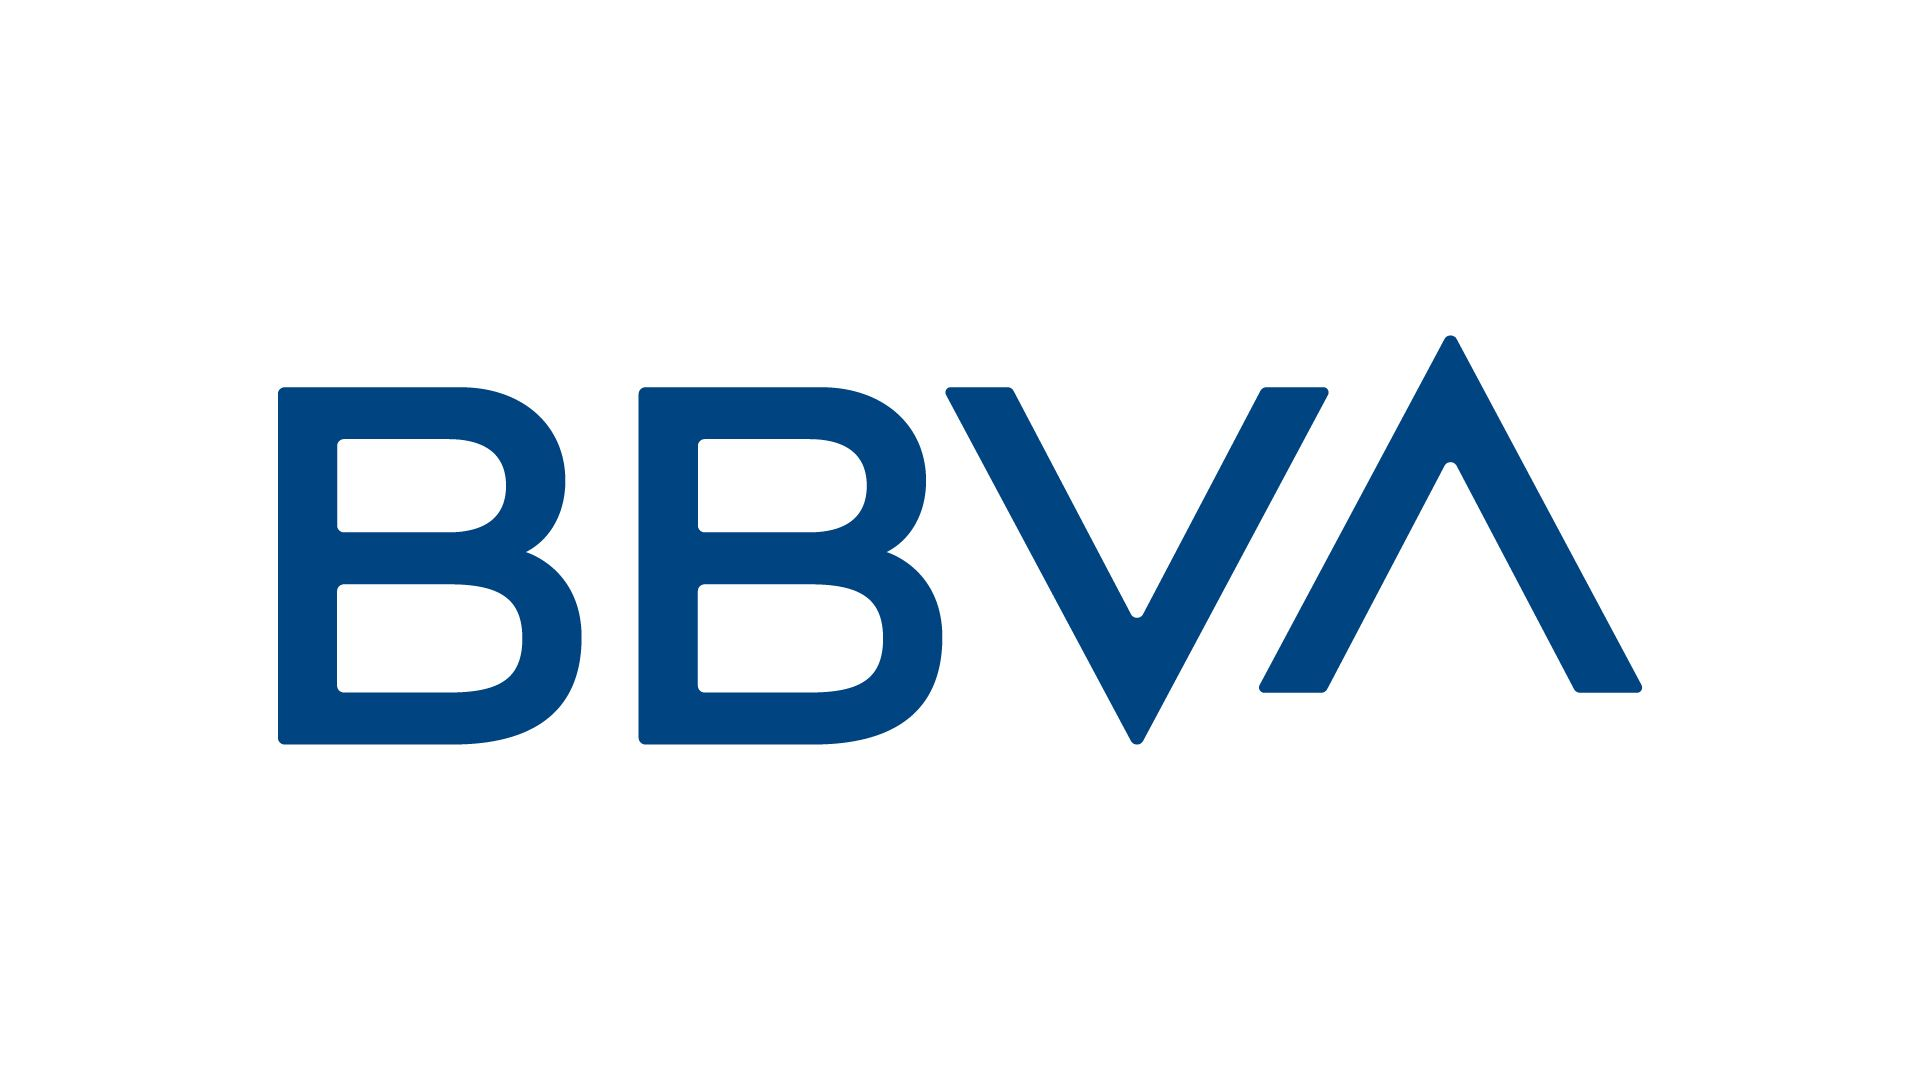 BBVA uses GraphQL and Hasura to build an open source security product